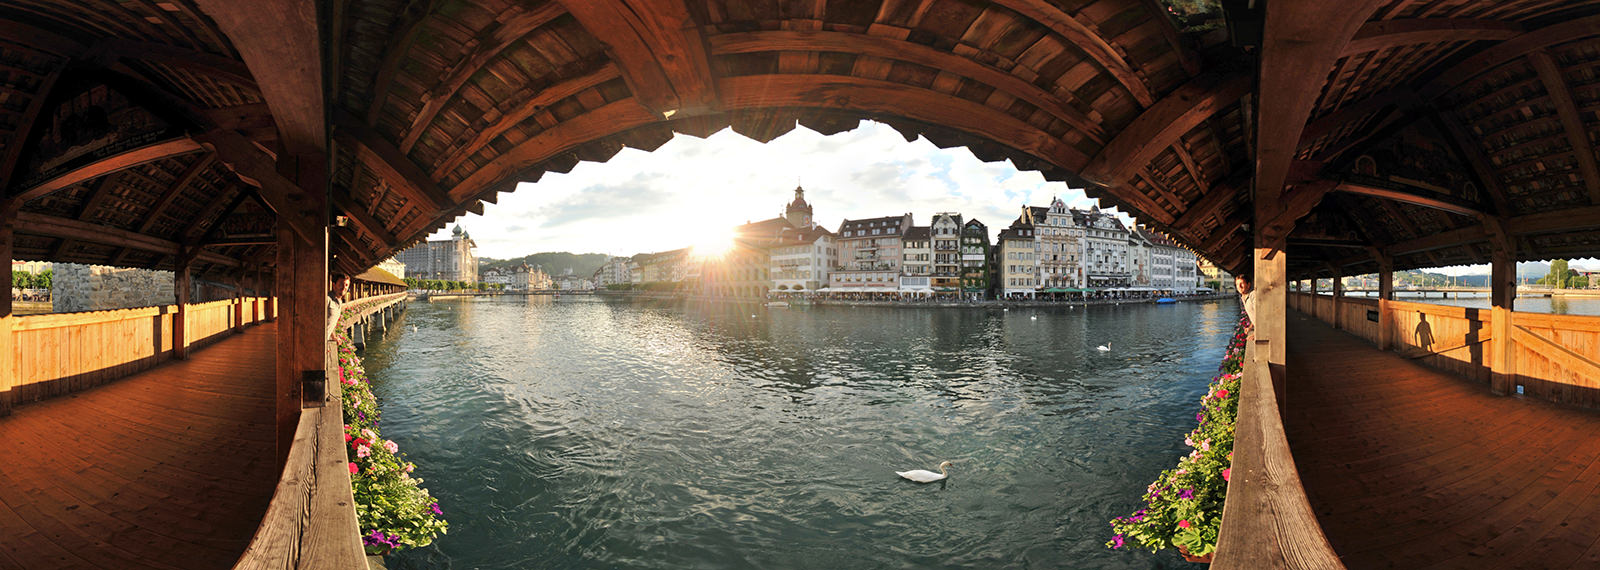 Kapellbrucke, Chapel Bridge, Luzern - Panorama 360°